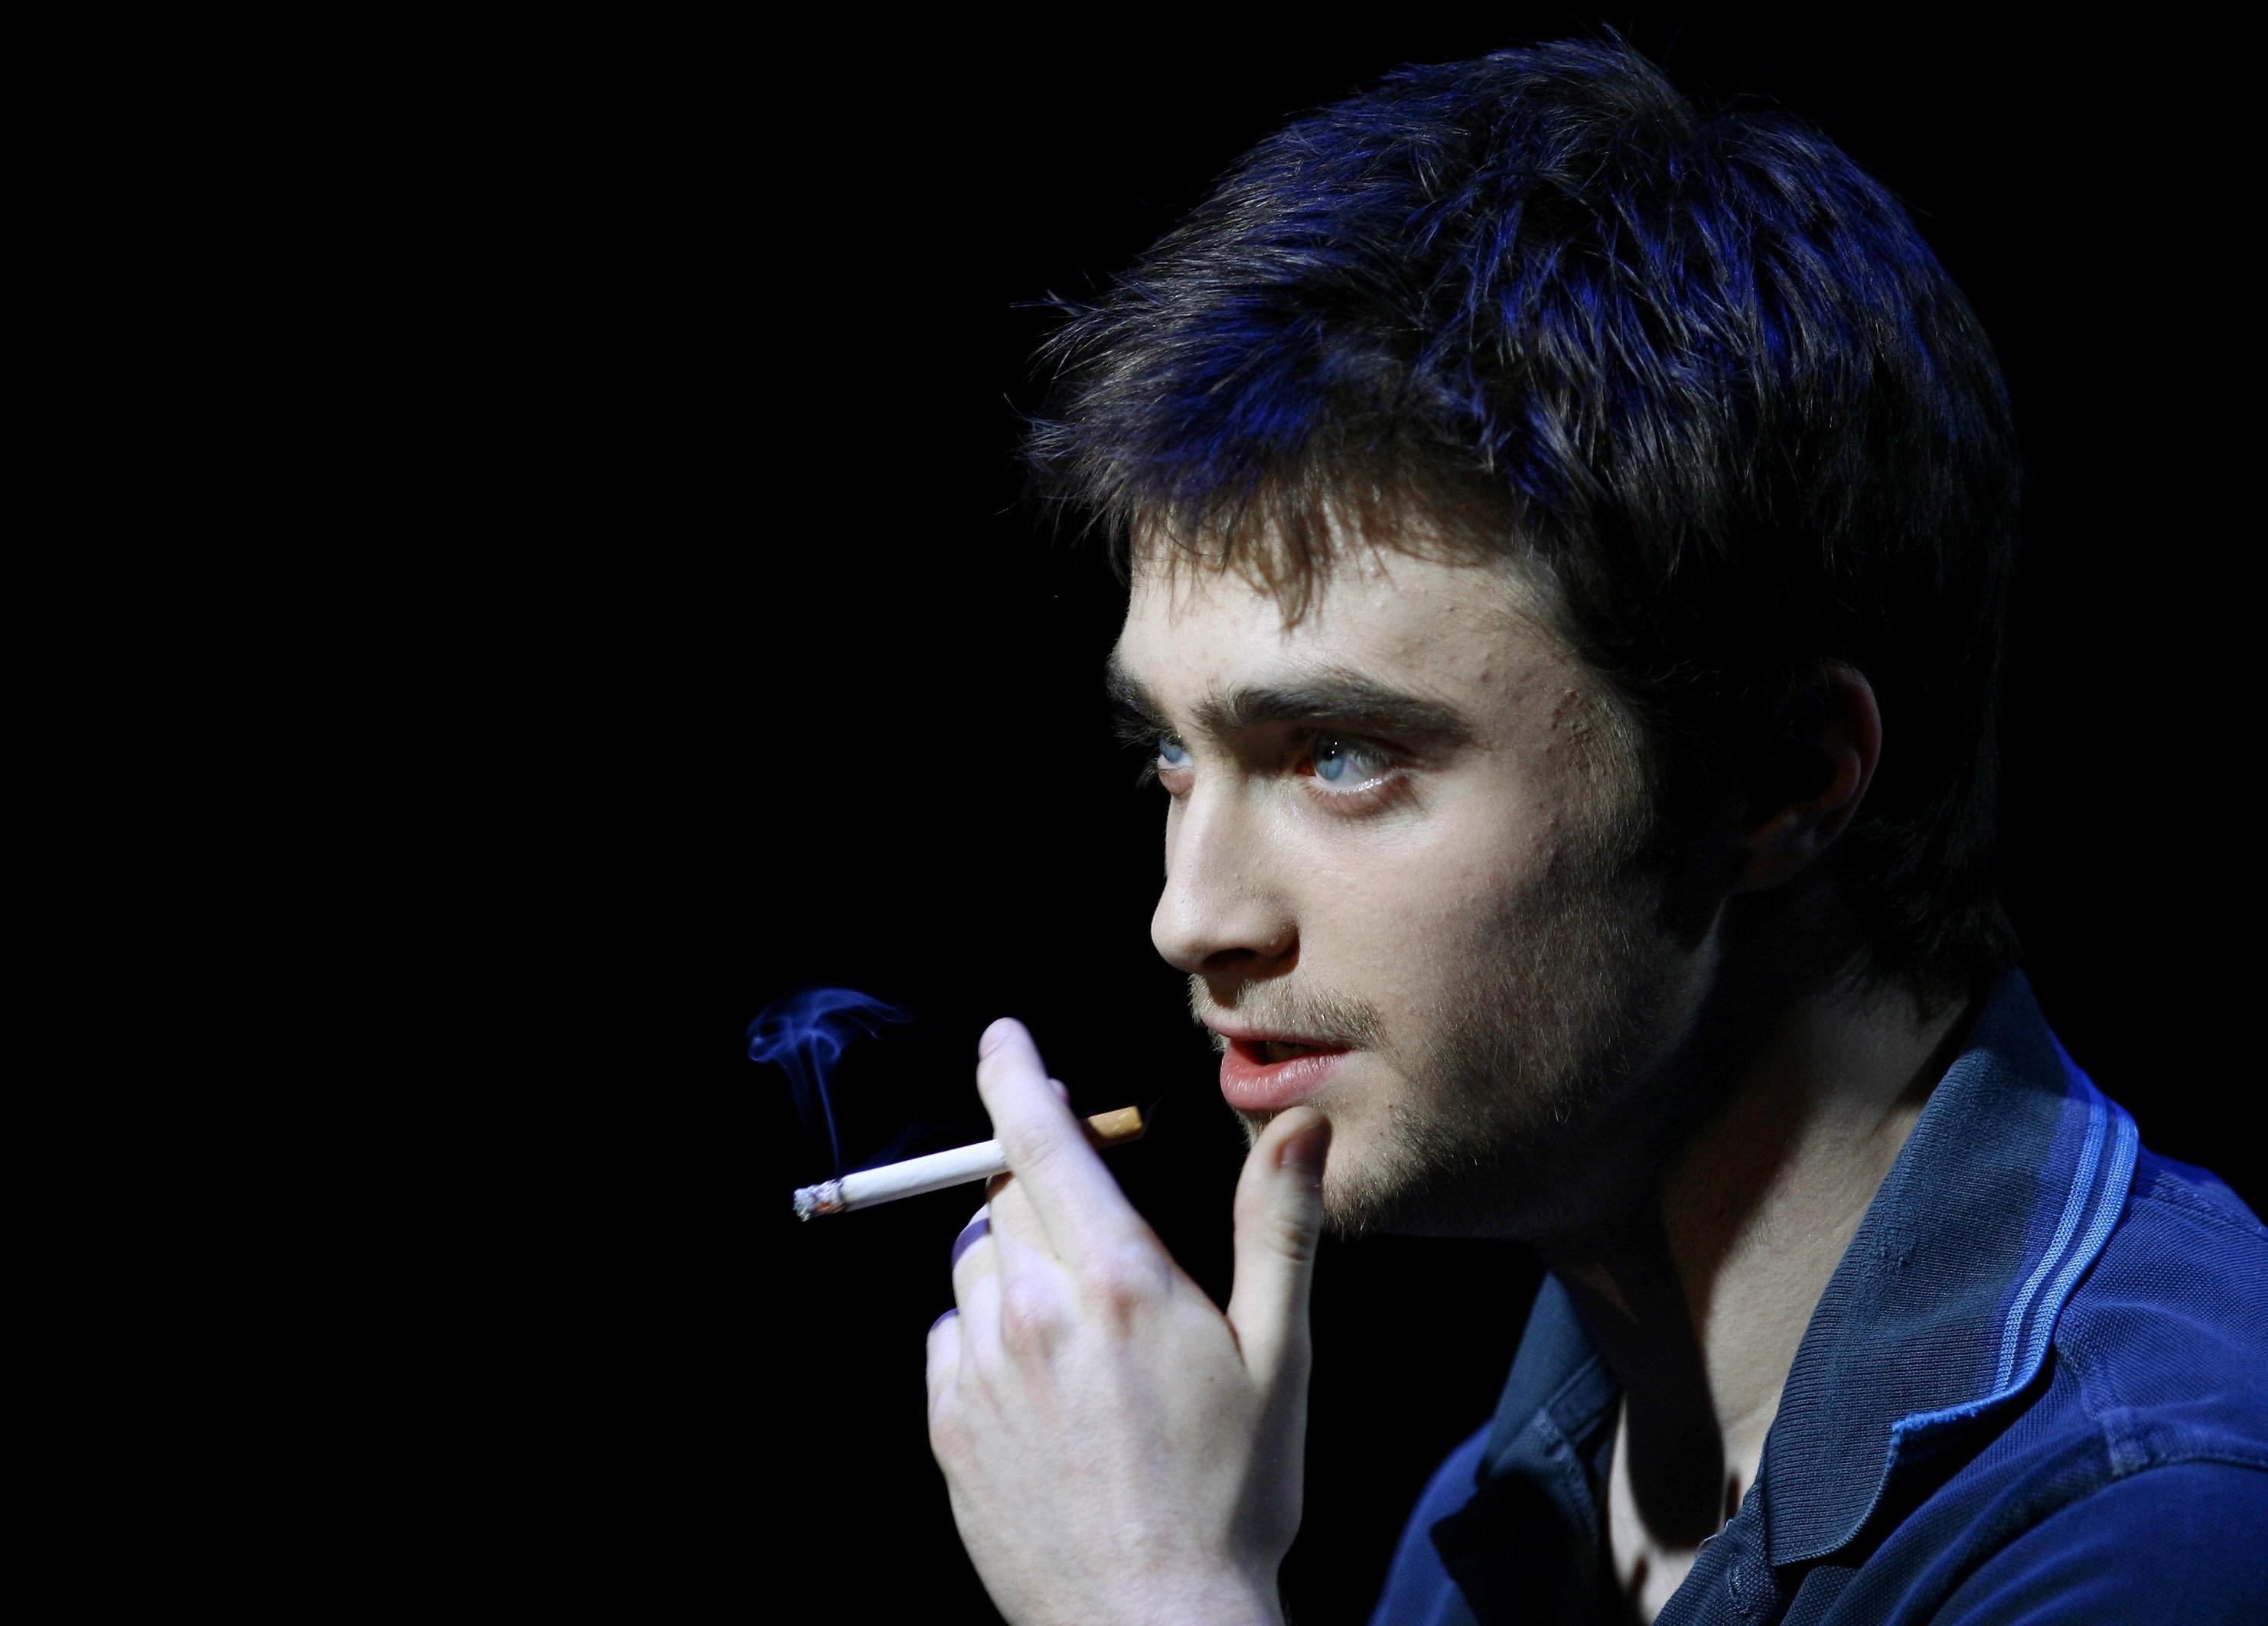 Daniel Radcliffe smoking